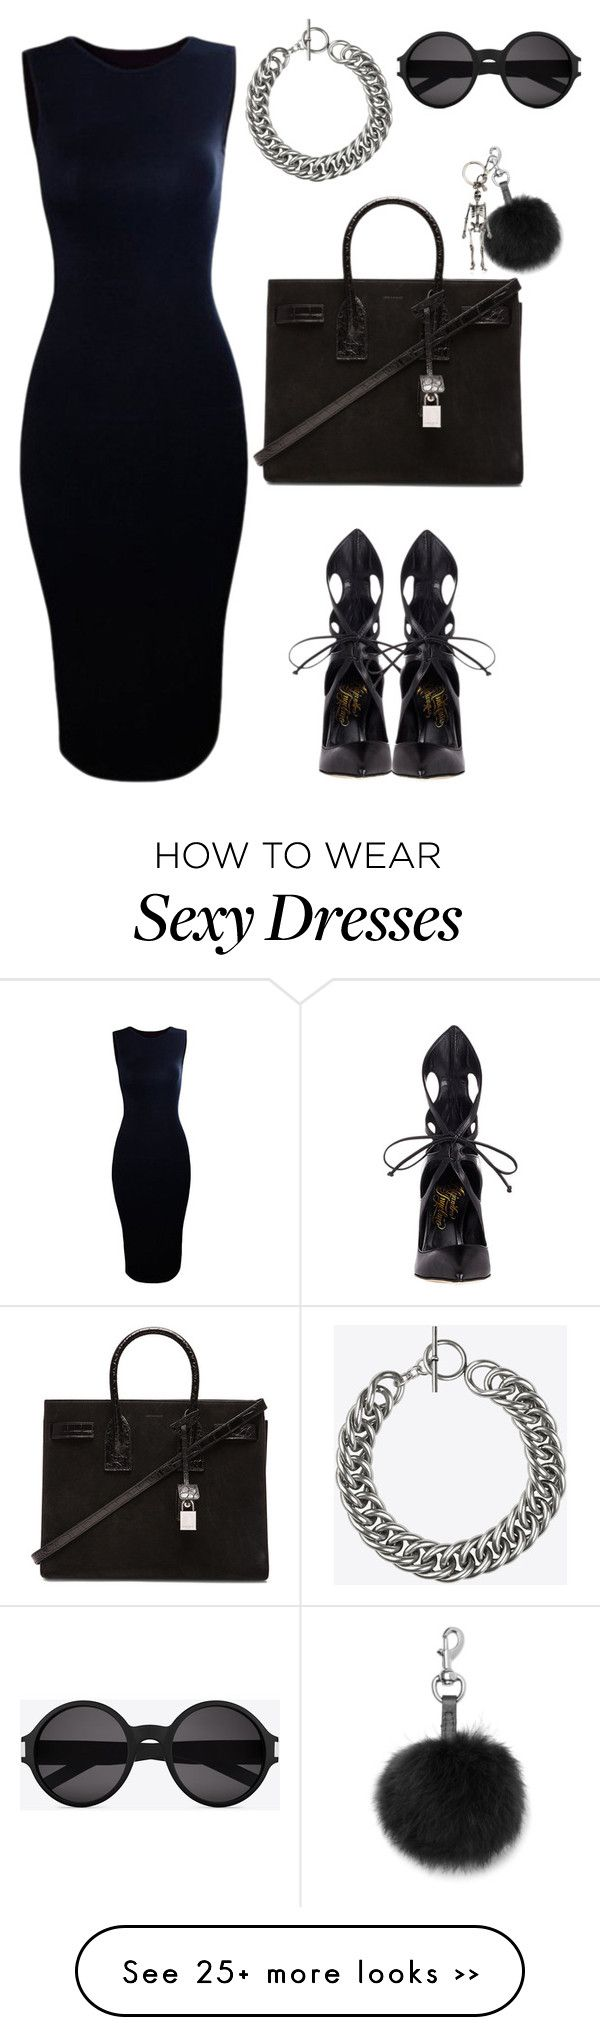 """Work chic"" by rabbitcult on Polyvore featuring Alejandro Ingelmo, Yves Saint Laurent, Rebecca Minkoff and Alexander McQueen"